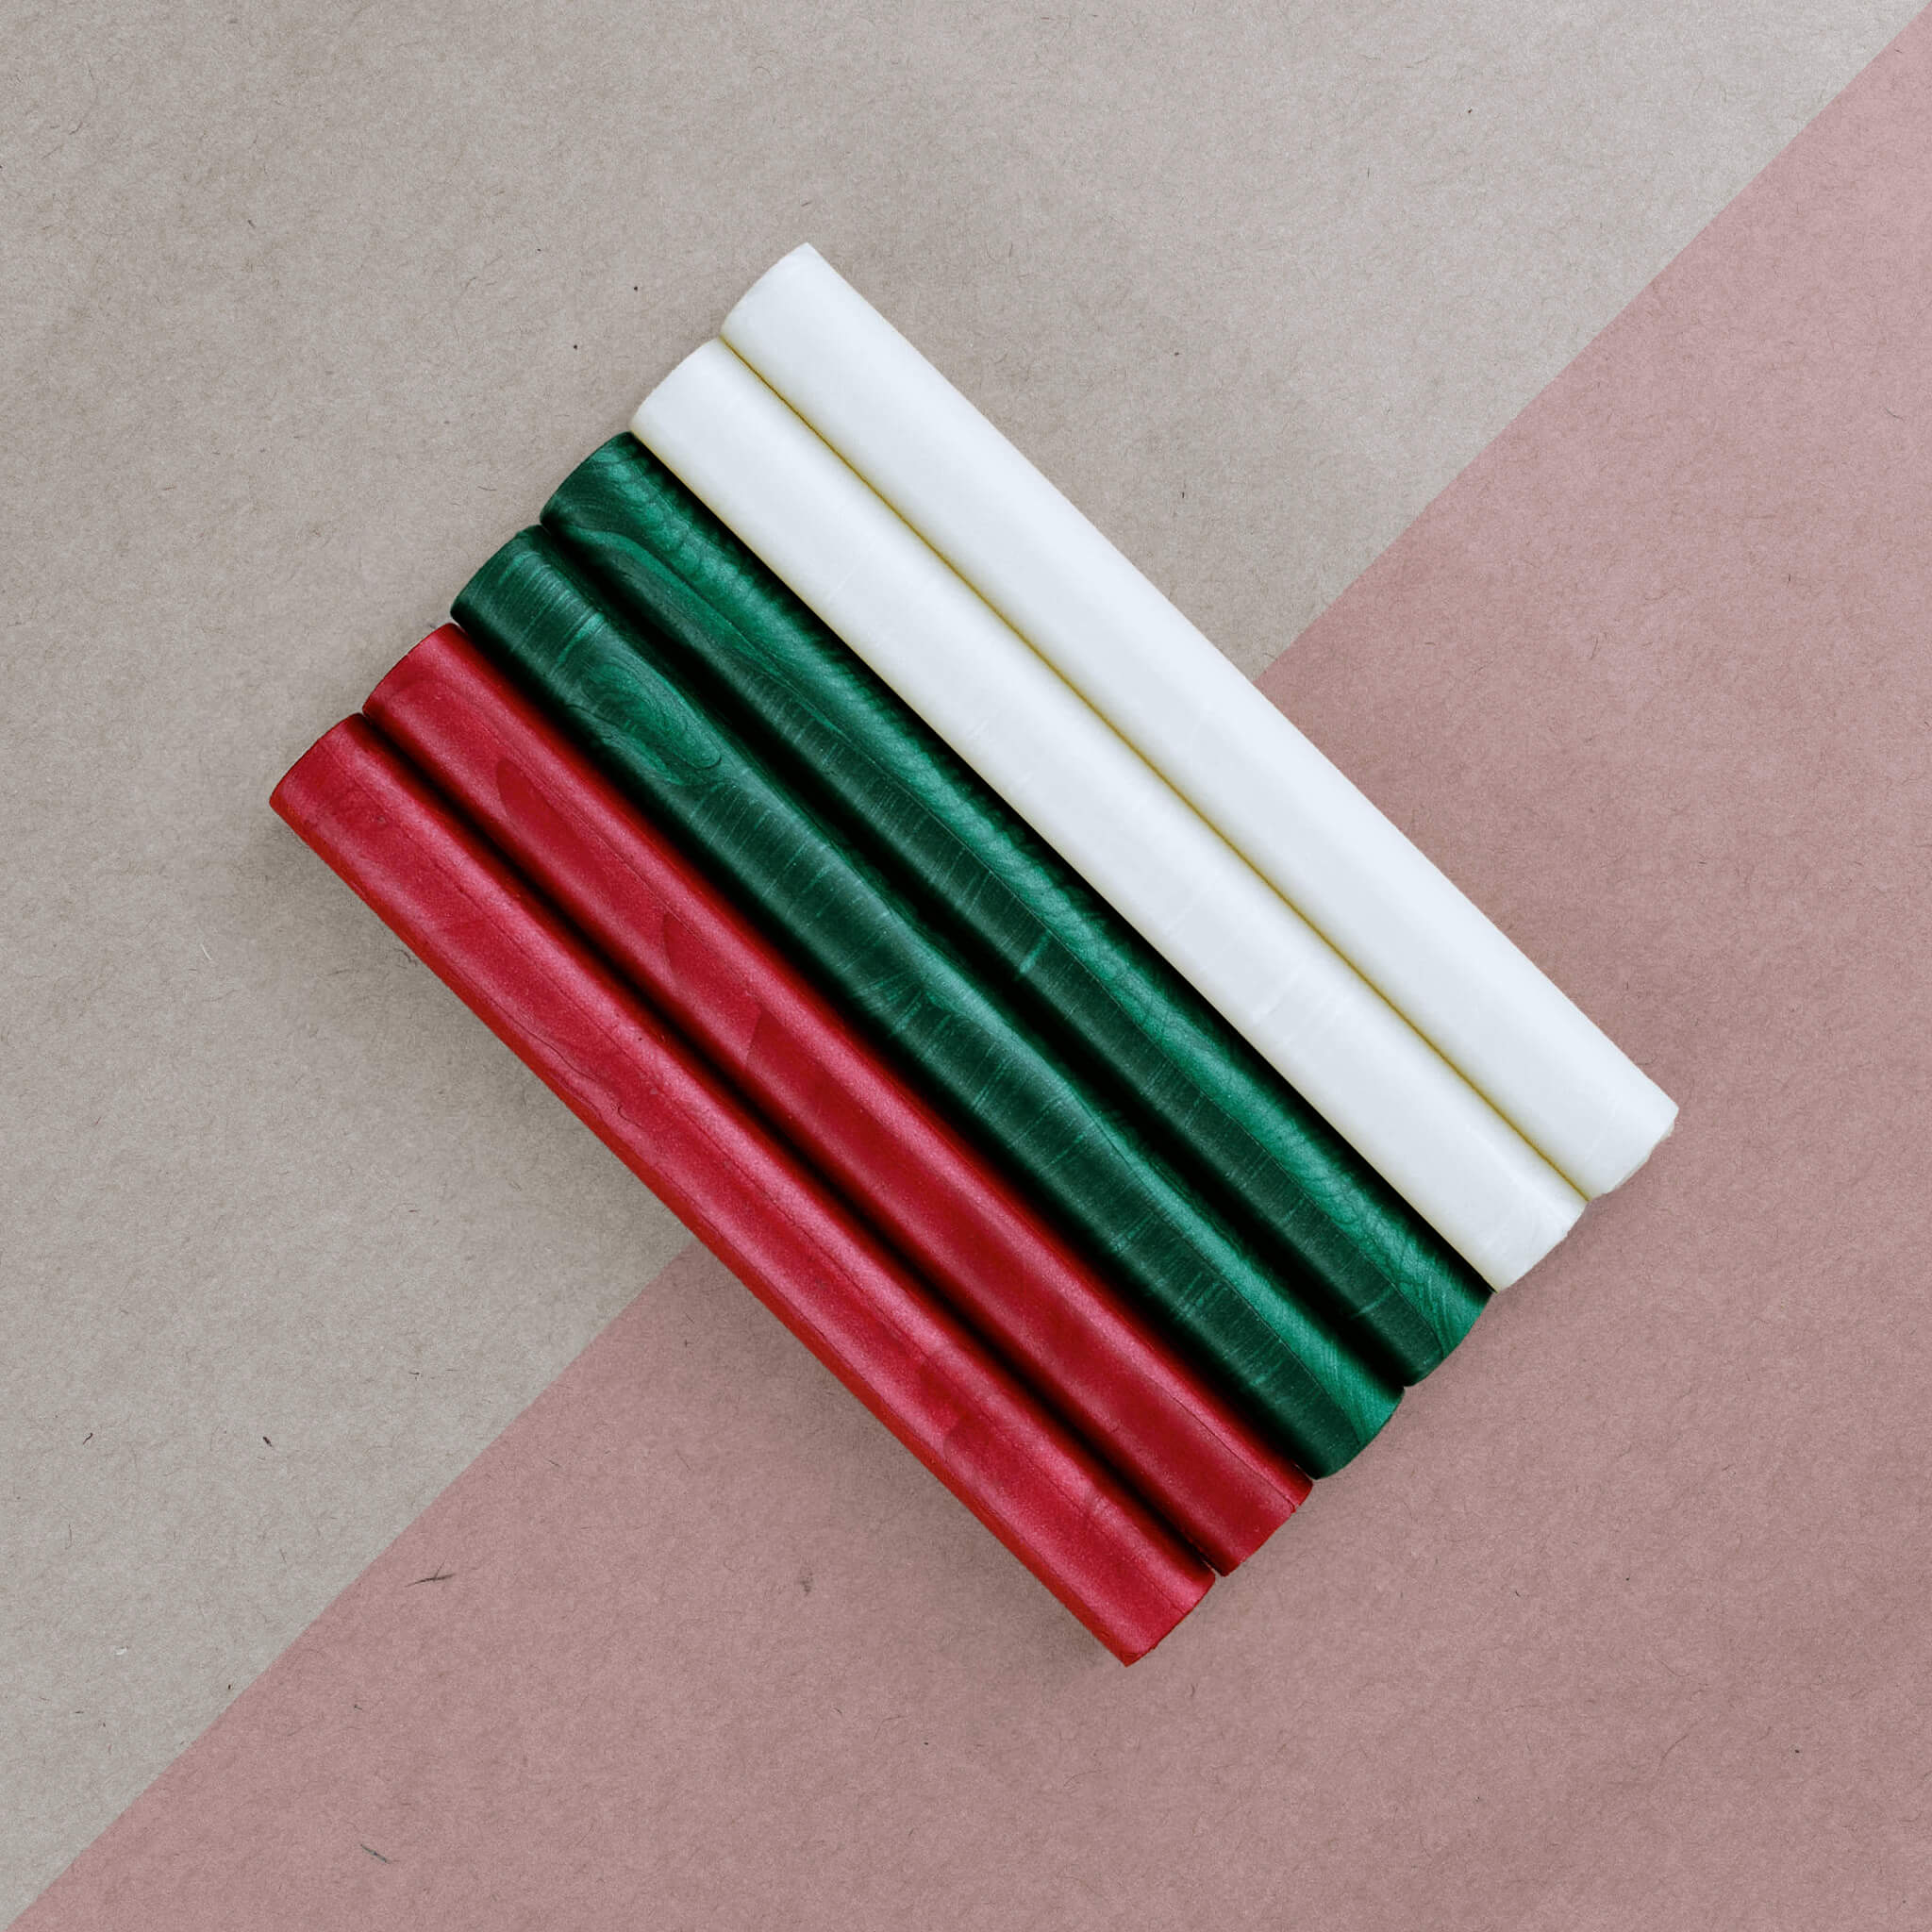 Flexible Sealing Wax Sticks - Christmas Edition